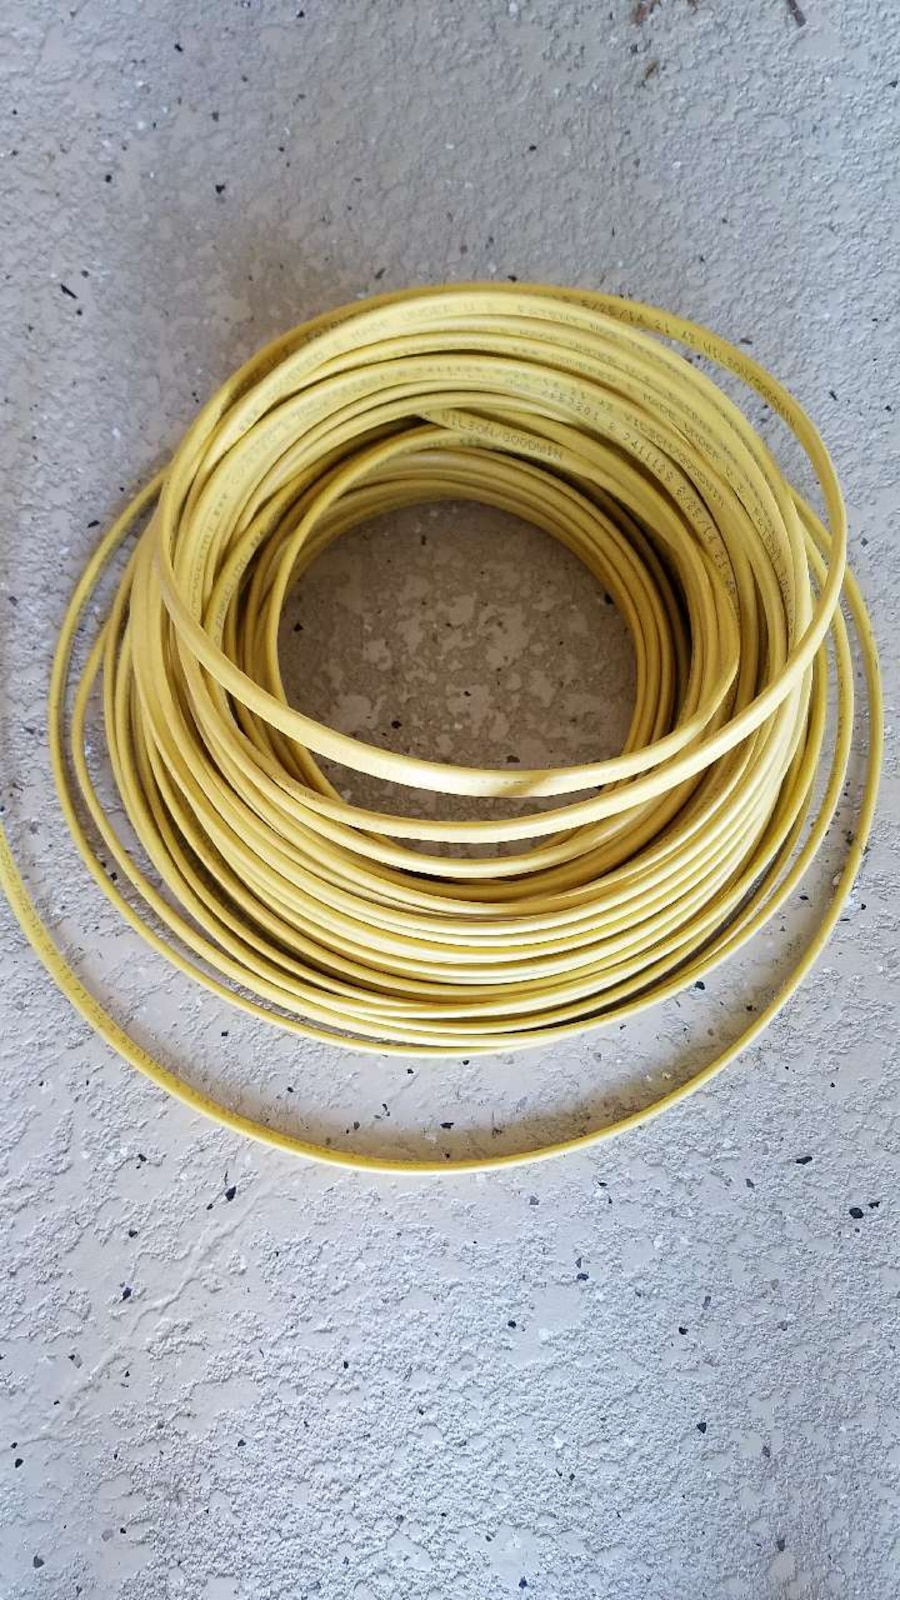 Fantastic Romex Electrical Wire Types Single Pole Switch Wiring 1000 Ft 12 2 Solid Simpull Nmb Wire28828201 The Home Depot Wonderful Yellow Contemporary System Block 337afe0b86aee59809794a619bebd880